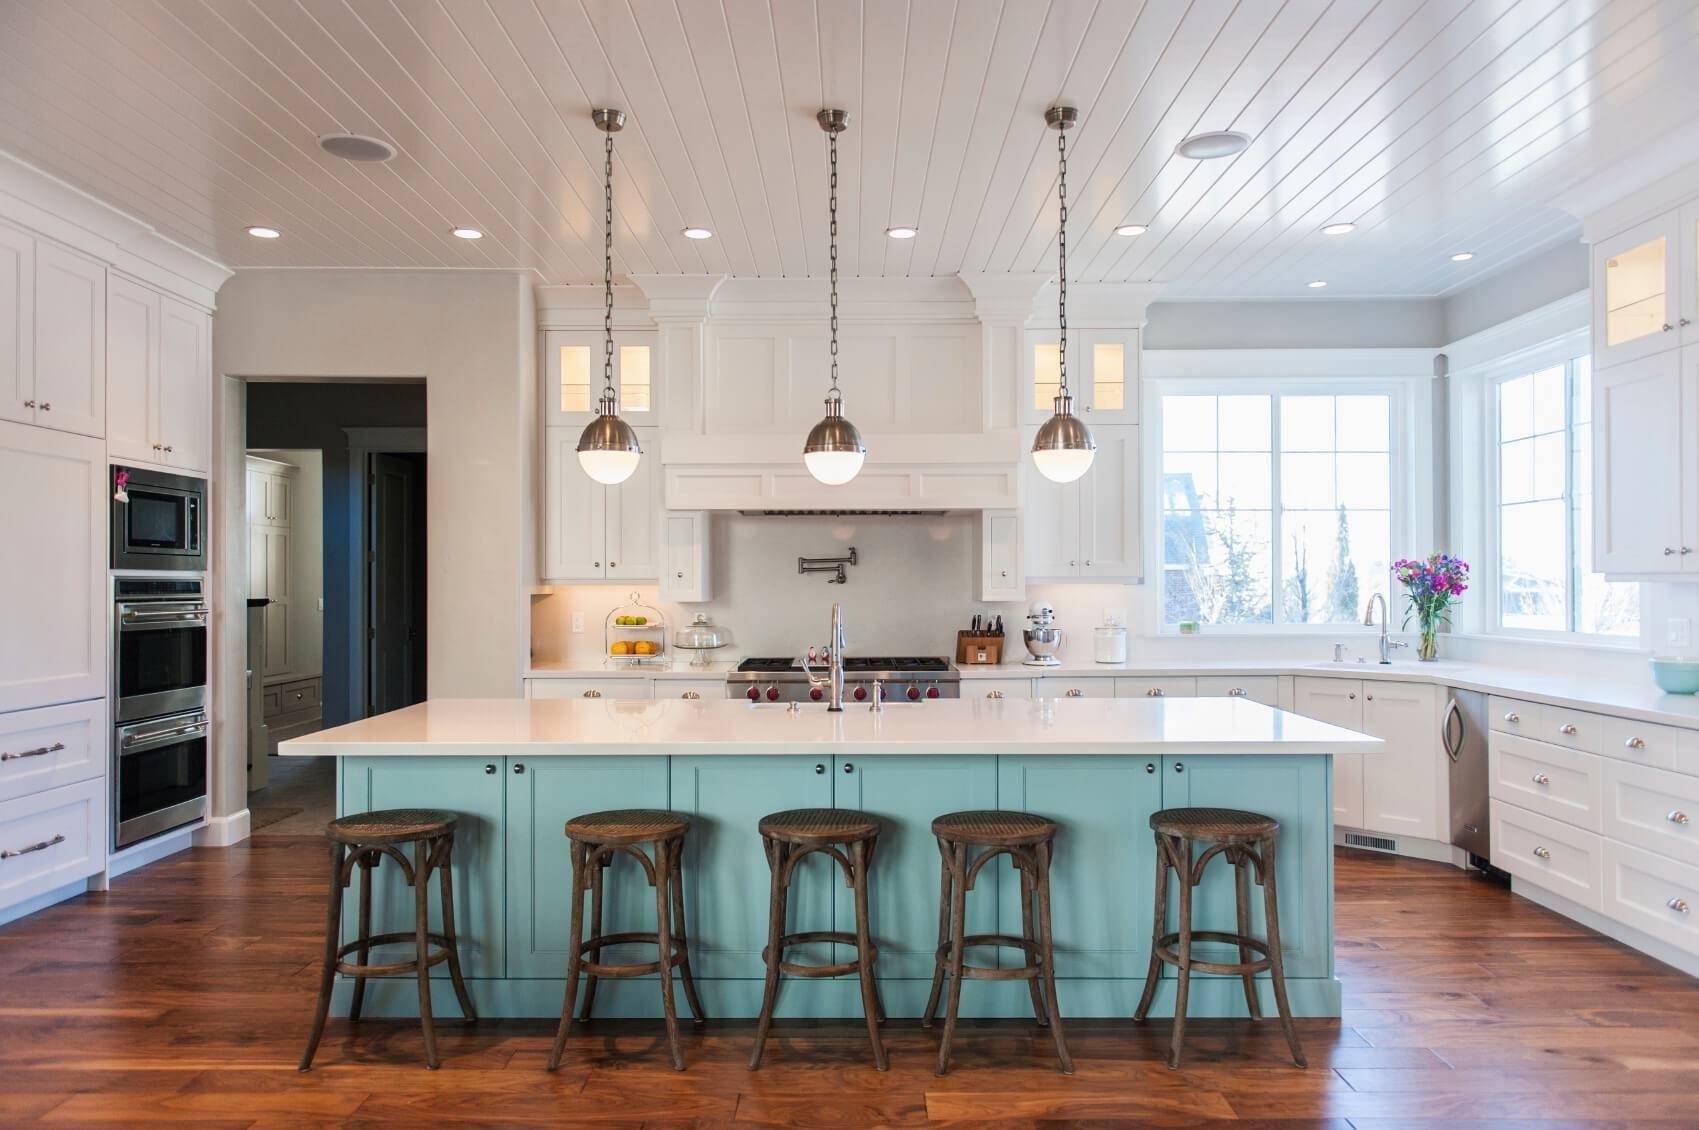 Kitchen Design : Entry Hall Pendant Lights Curved Countertop Bar pertaining to Entry Hall Pendant Lighting (Image 11 of 15)